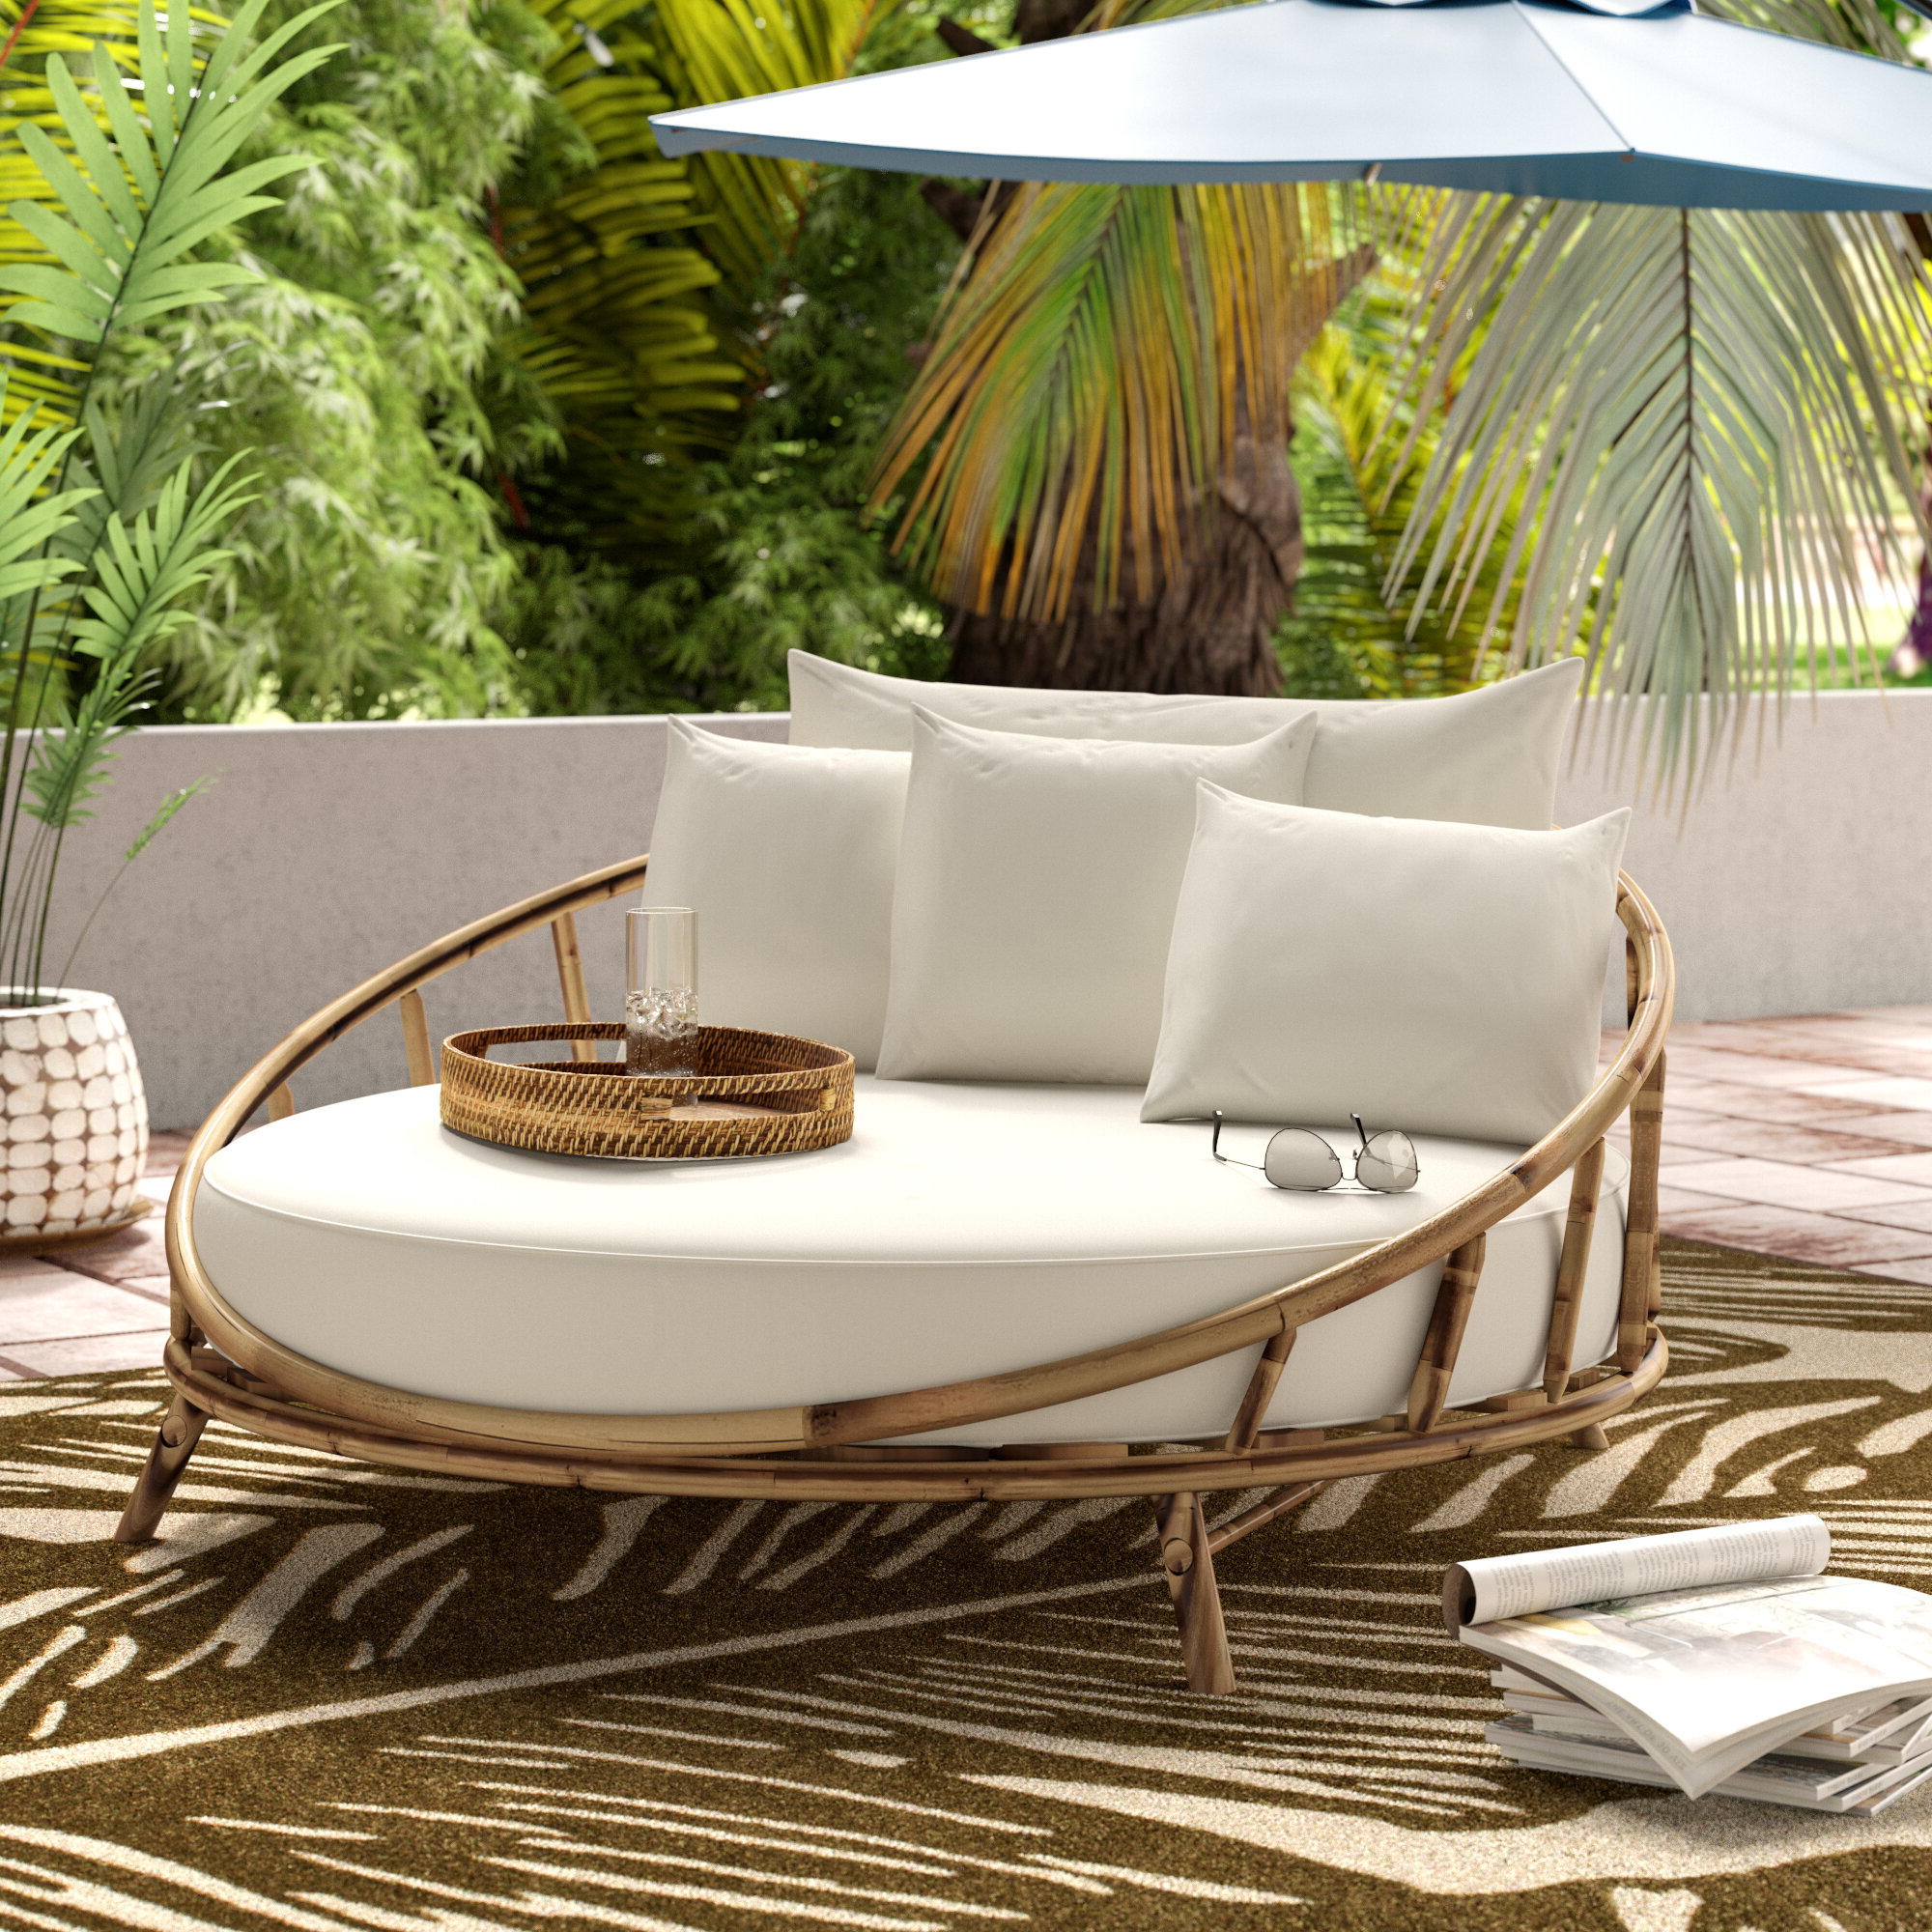 Latest Olu Bamboo Large Round Patio Daybed With Cushions With Regard To Bamboo Daybeds With Canopy (View 15 of 25)